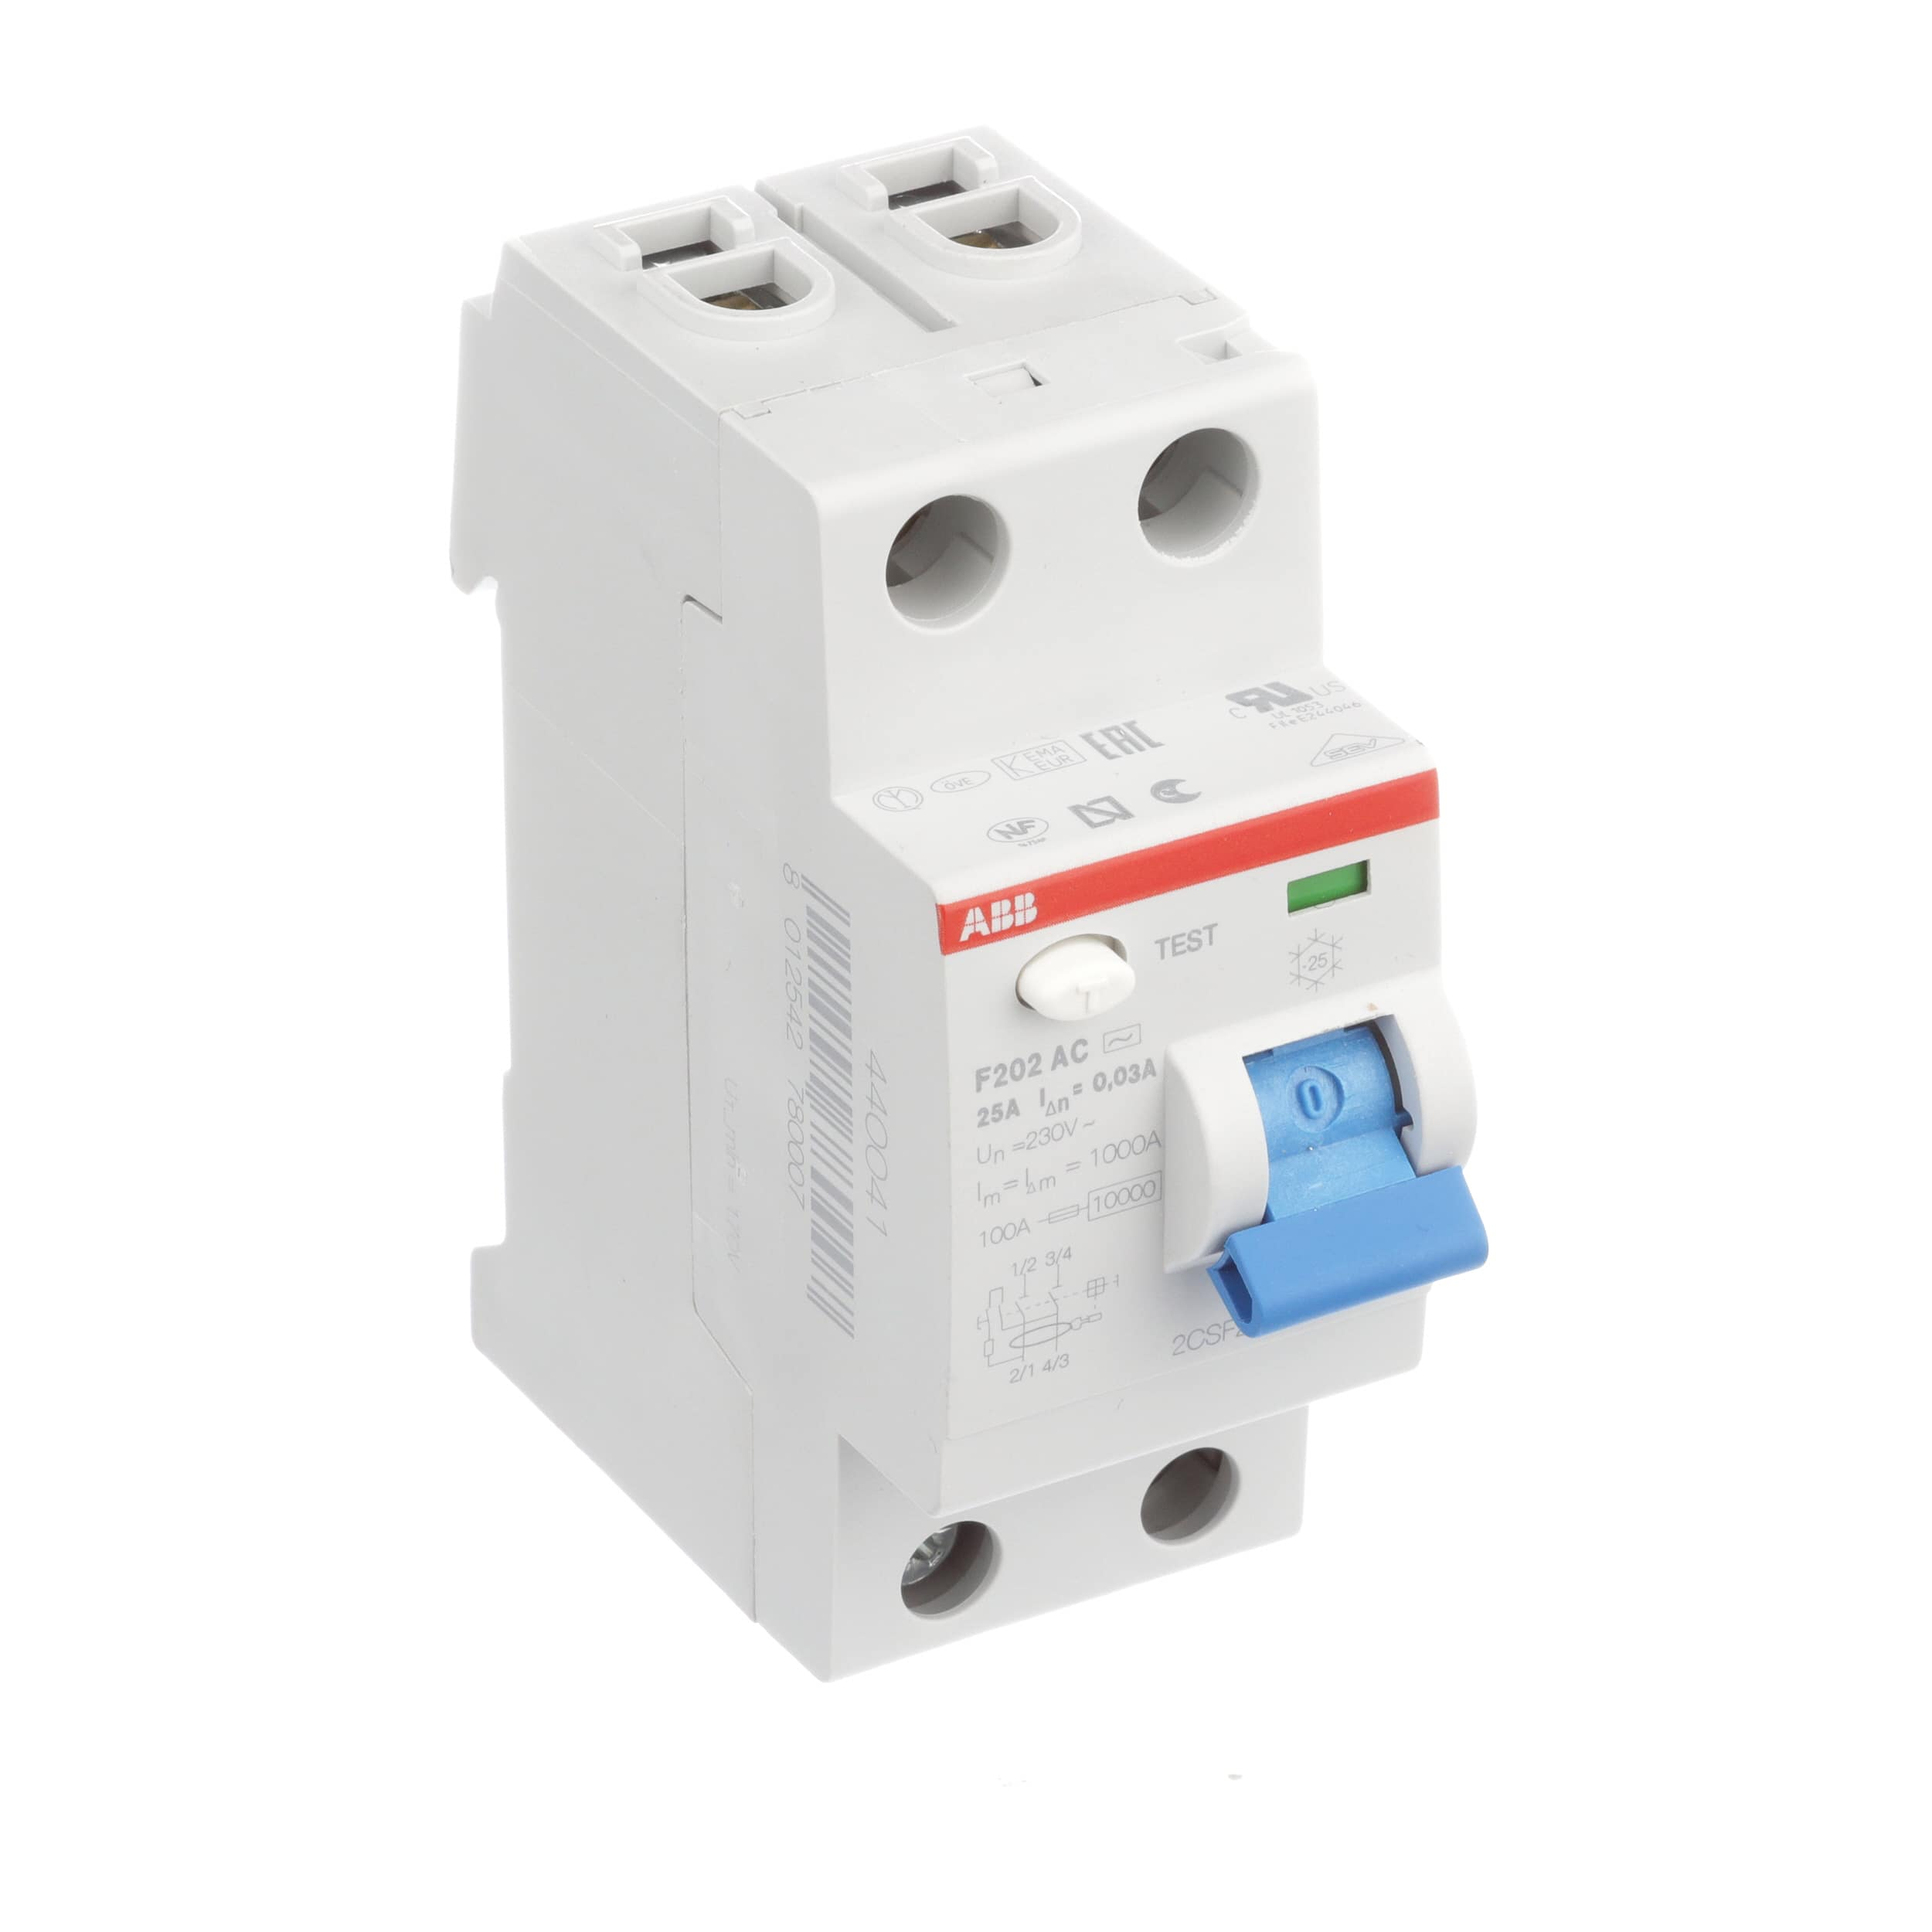 Abb F202ac 25 003 Circuit Breaker Gfep Ground Fault Equipment Under Current Relay Protection 2 Pole Ac 25a 30ma Allied Electronics Automation